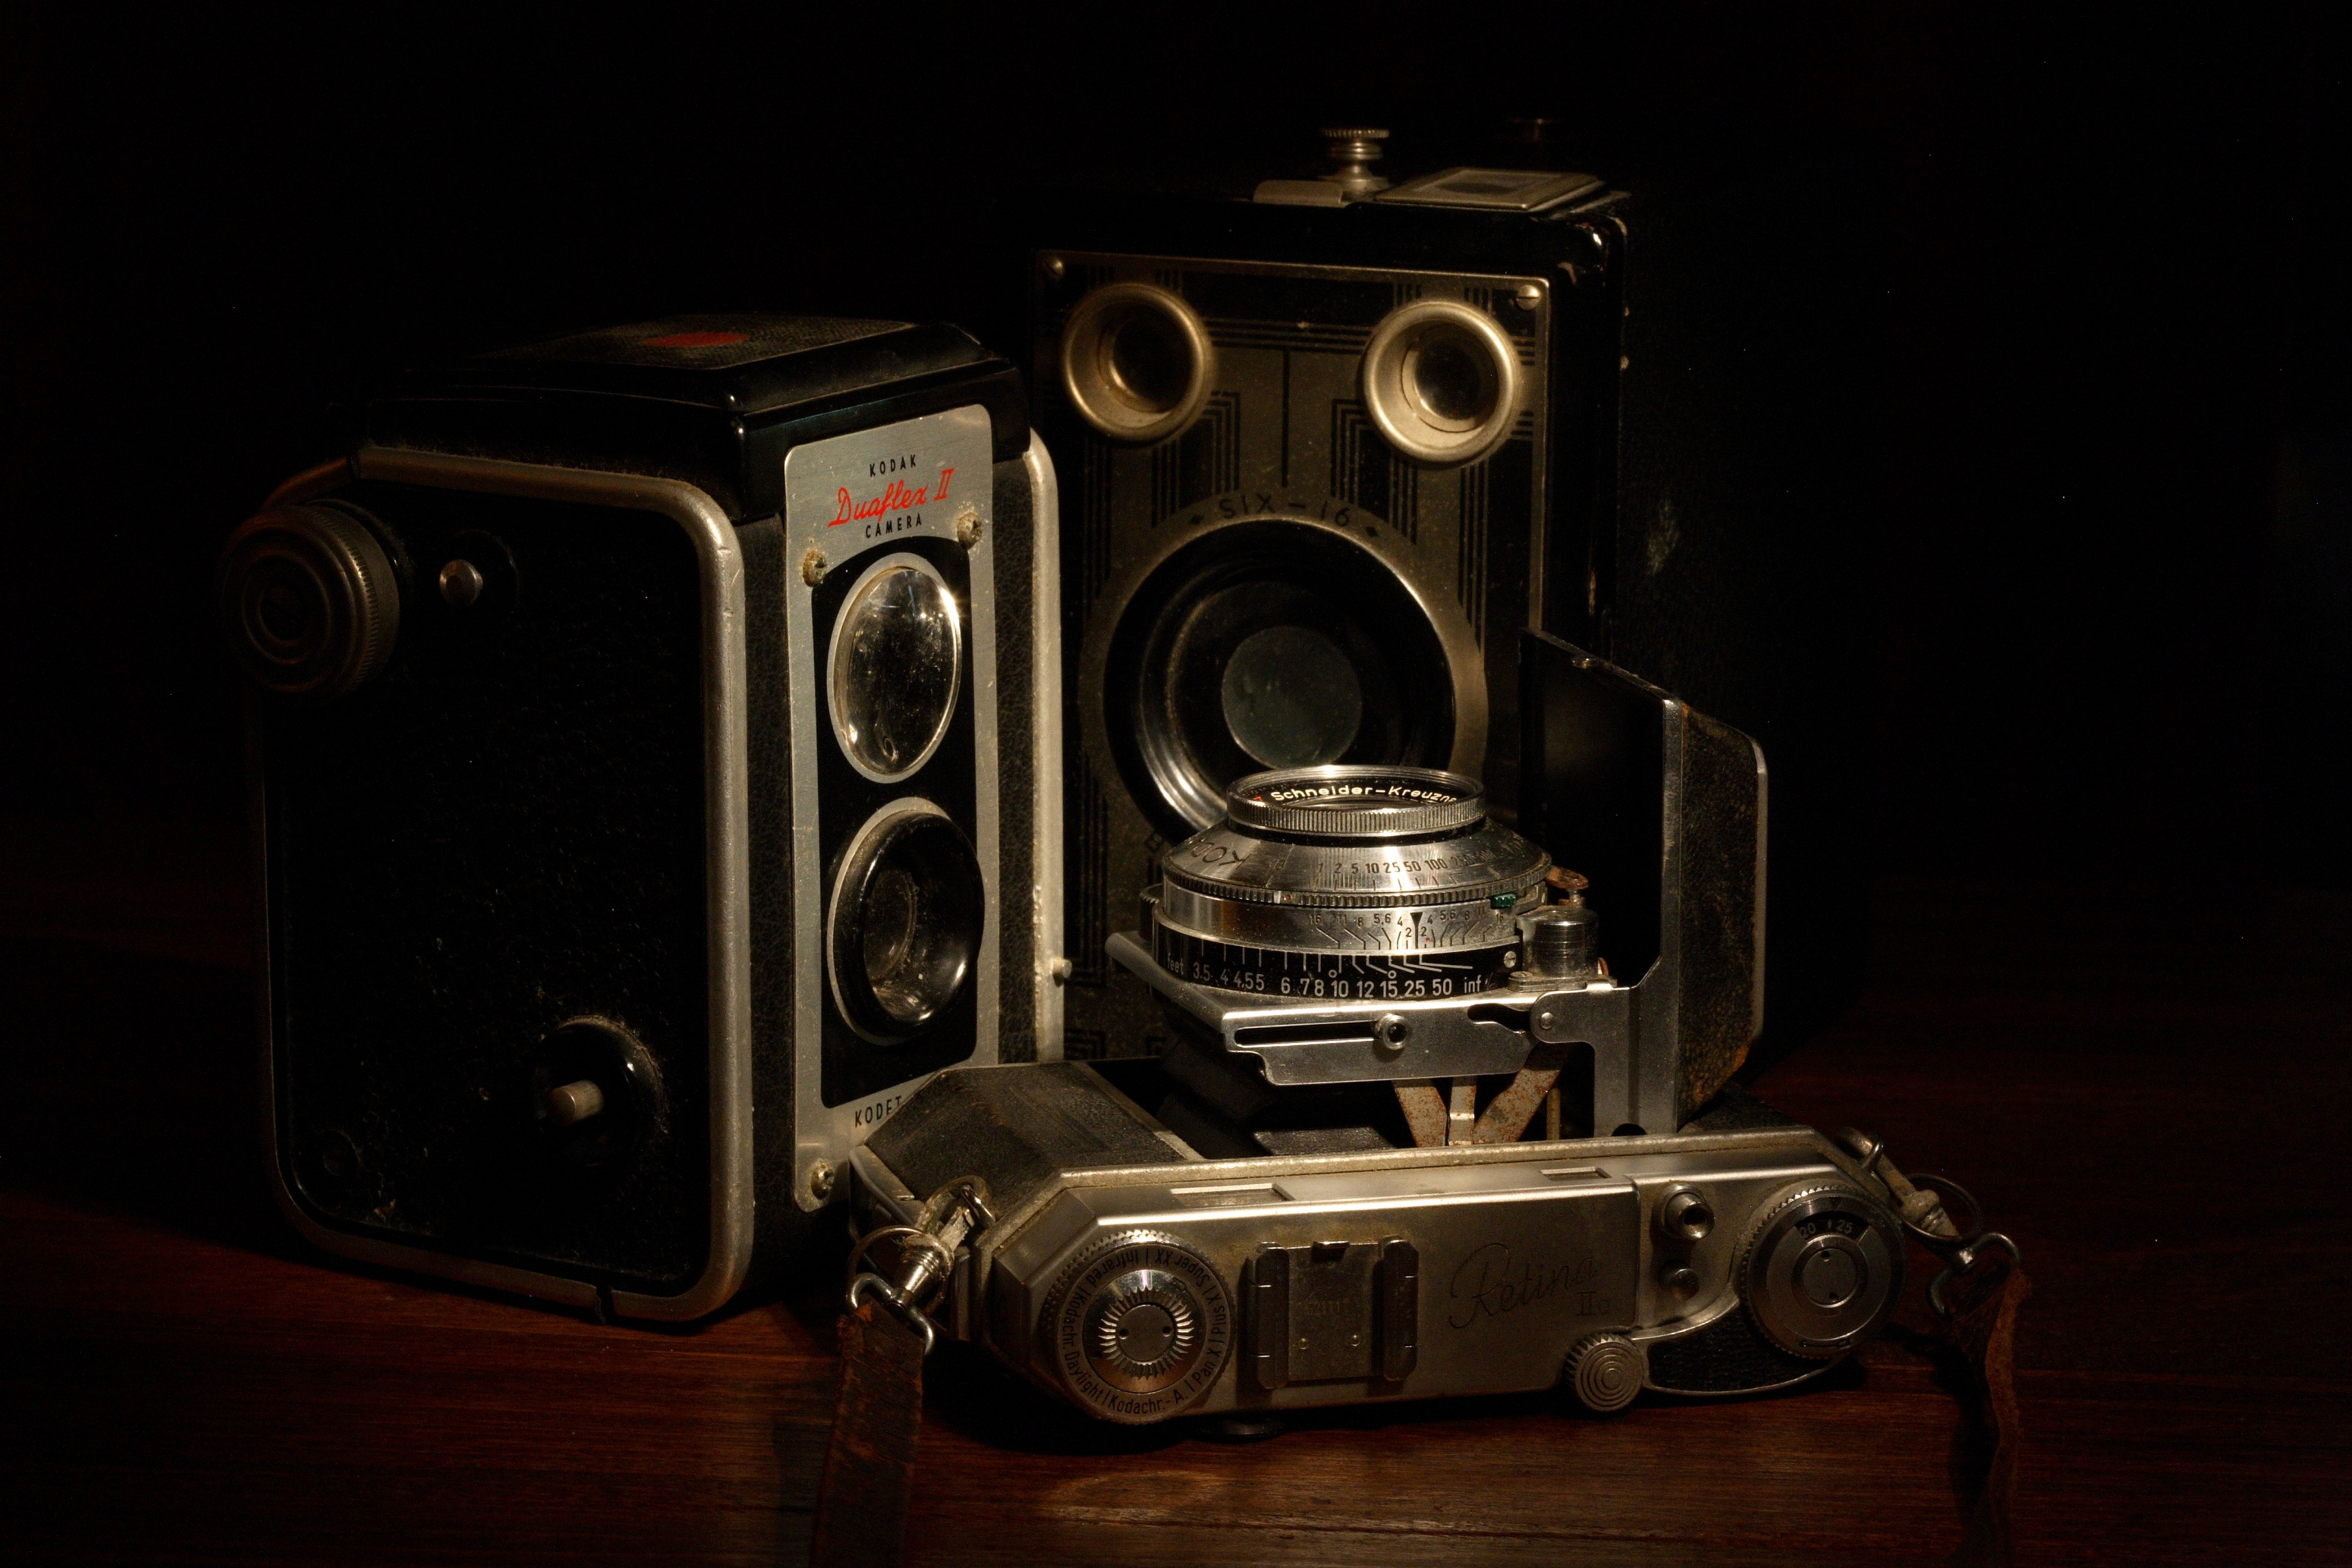 Http Commons Wikimedia Org Wiki File Antique Cameras Jpg